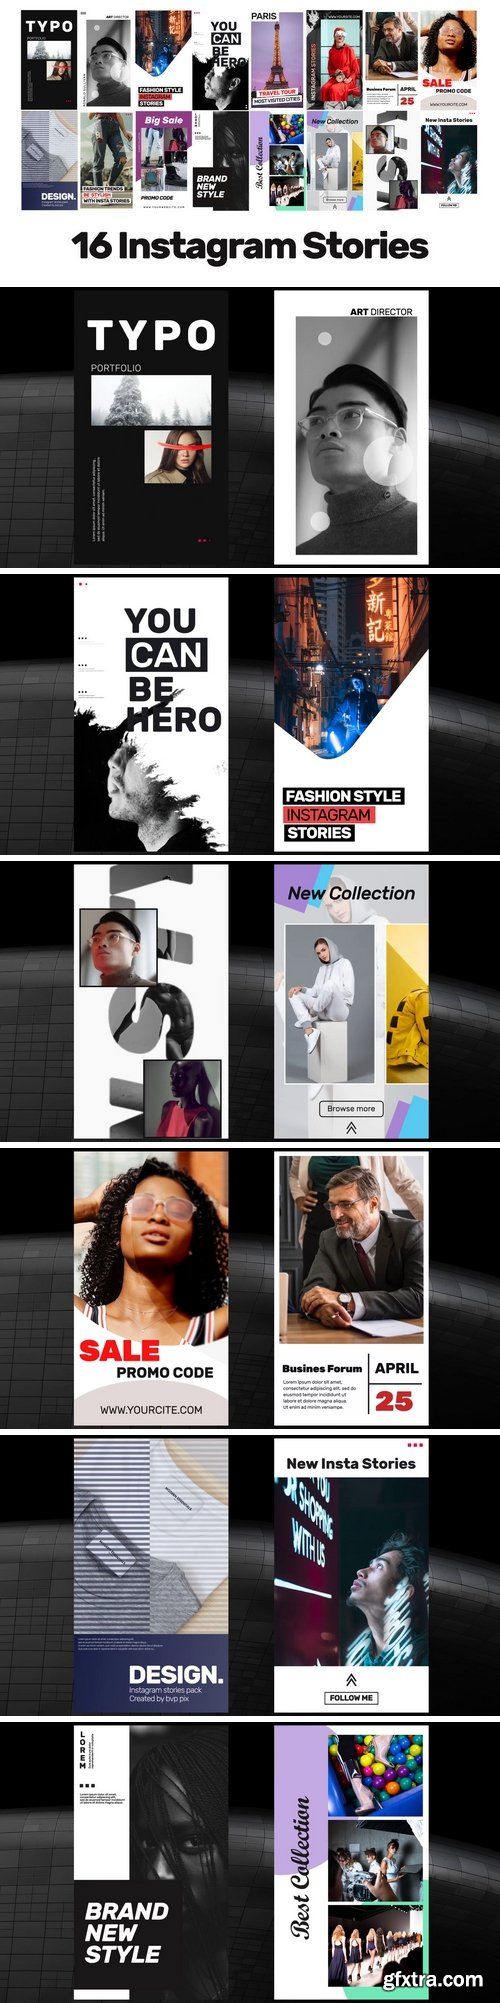 MA - 16 Instagram Stories V.2 After Effects Templates 151829